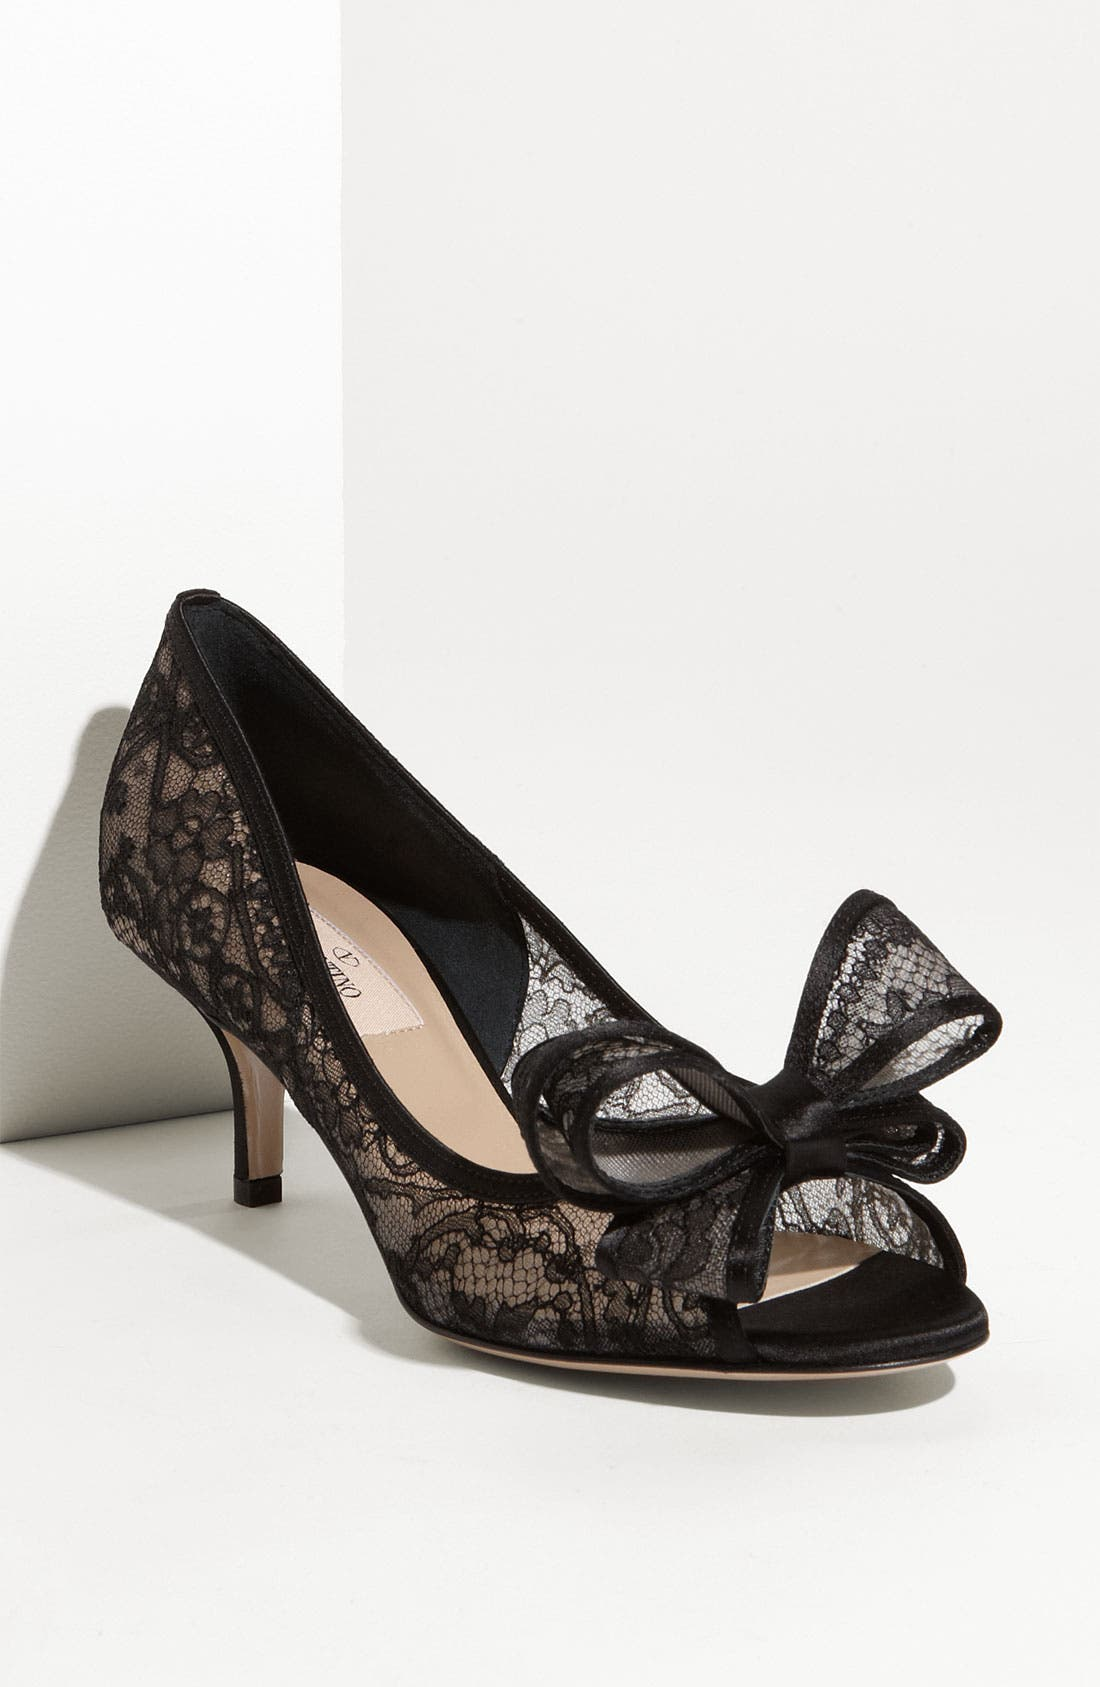 Main Image - VALENTINO GARAVANI Lace Couture Bow Pump